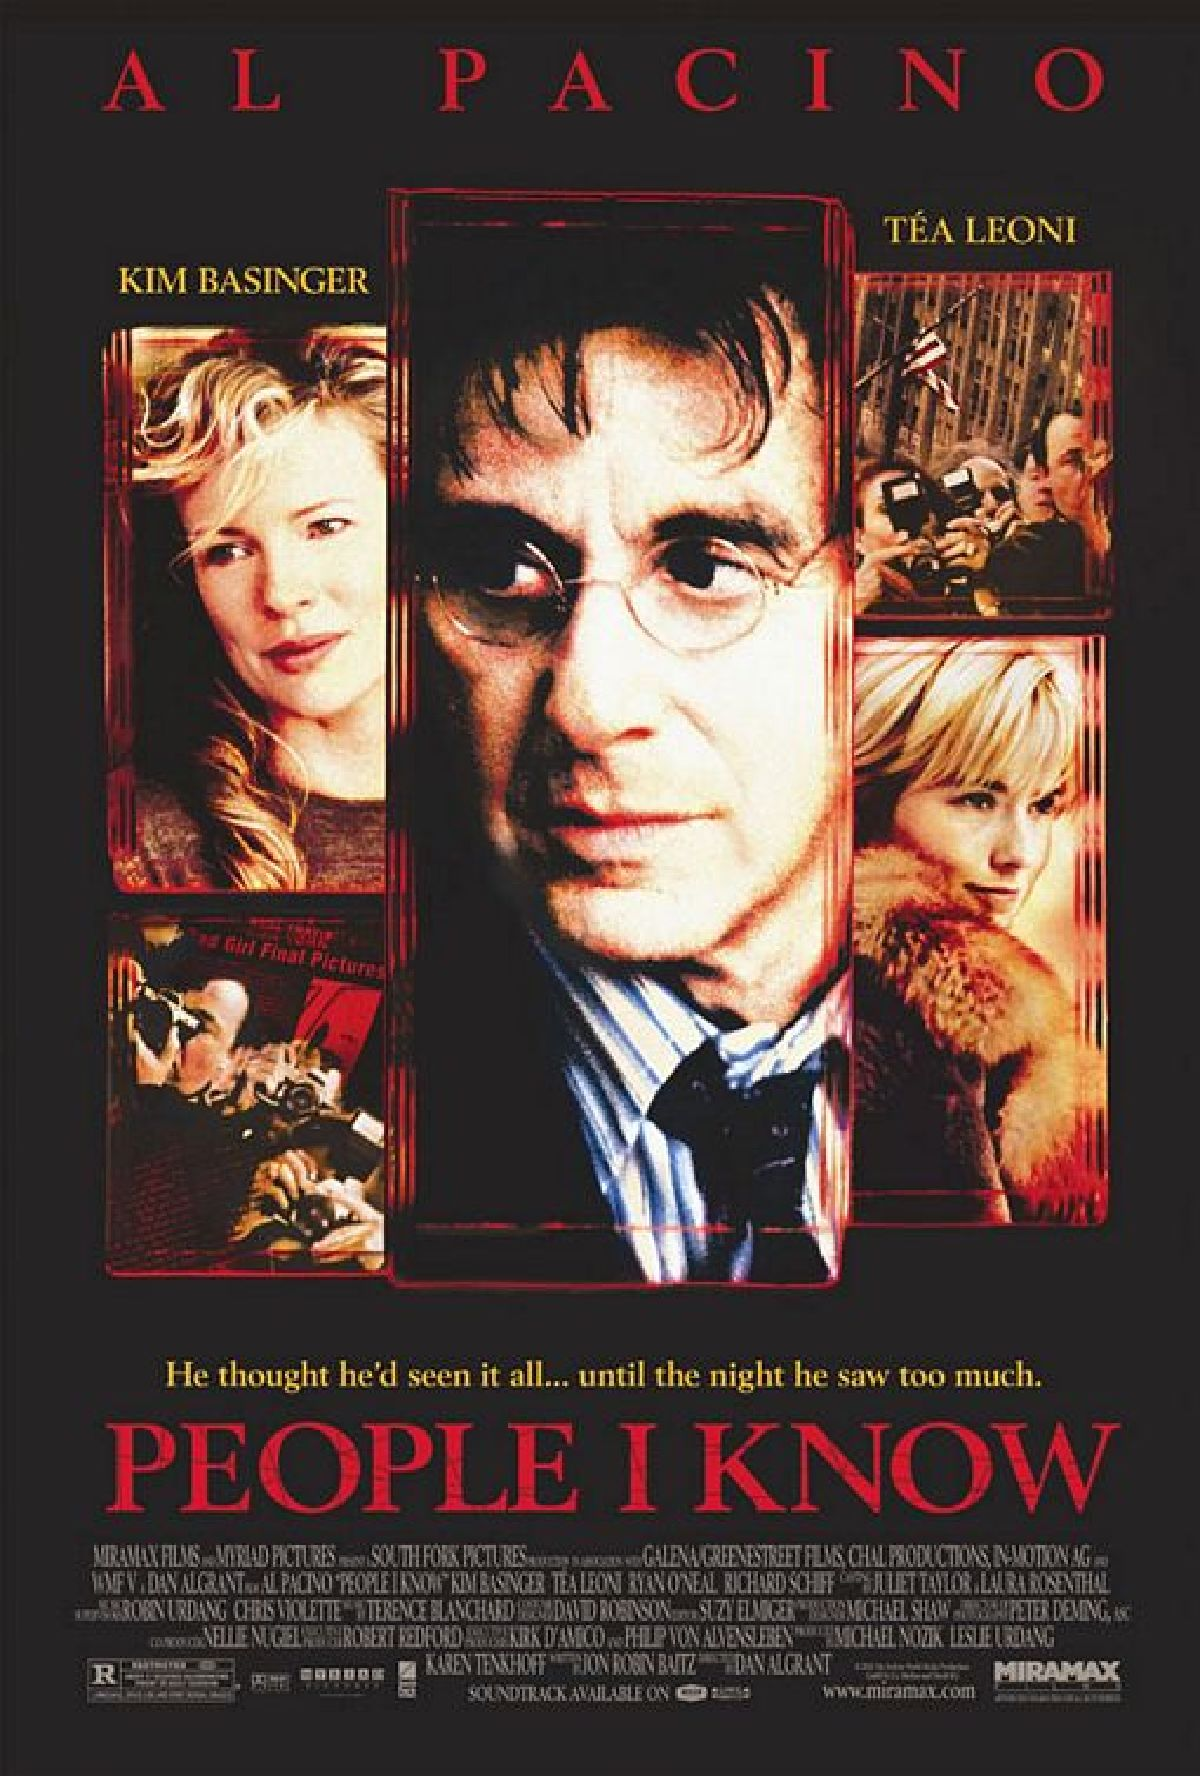 'People I Know' movie poster